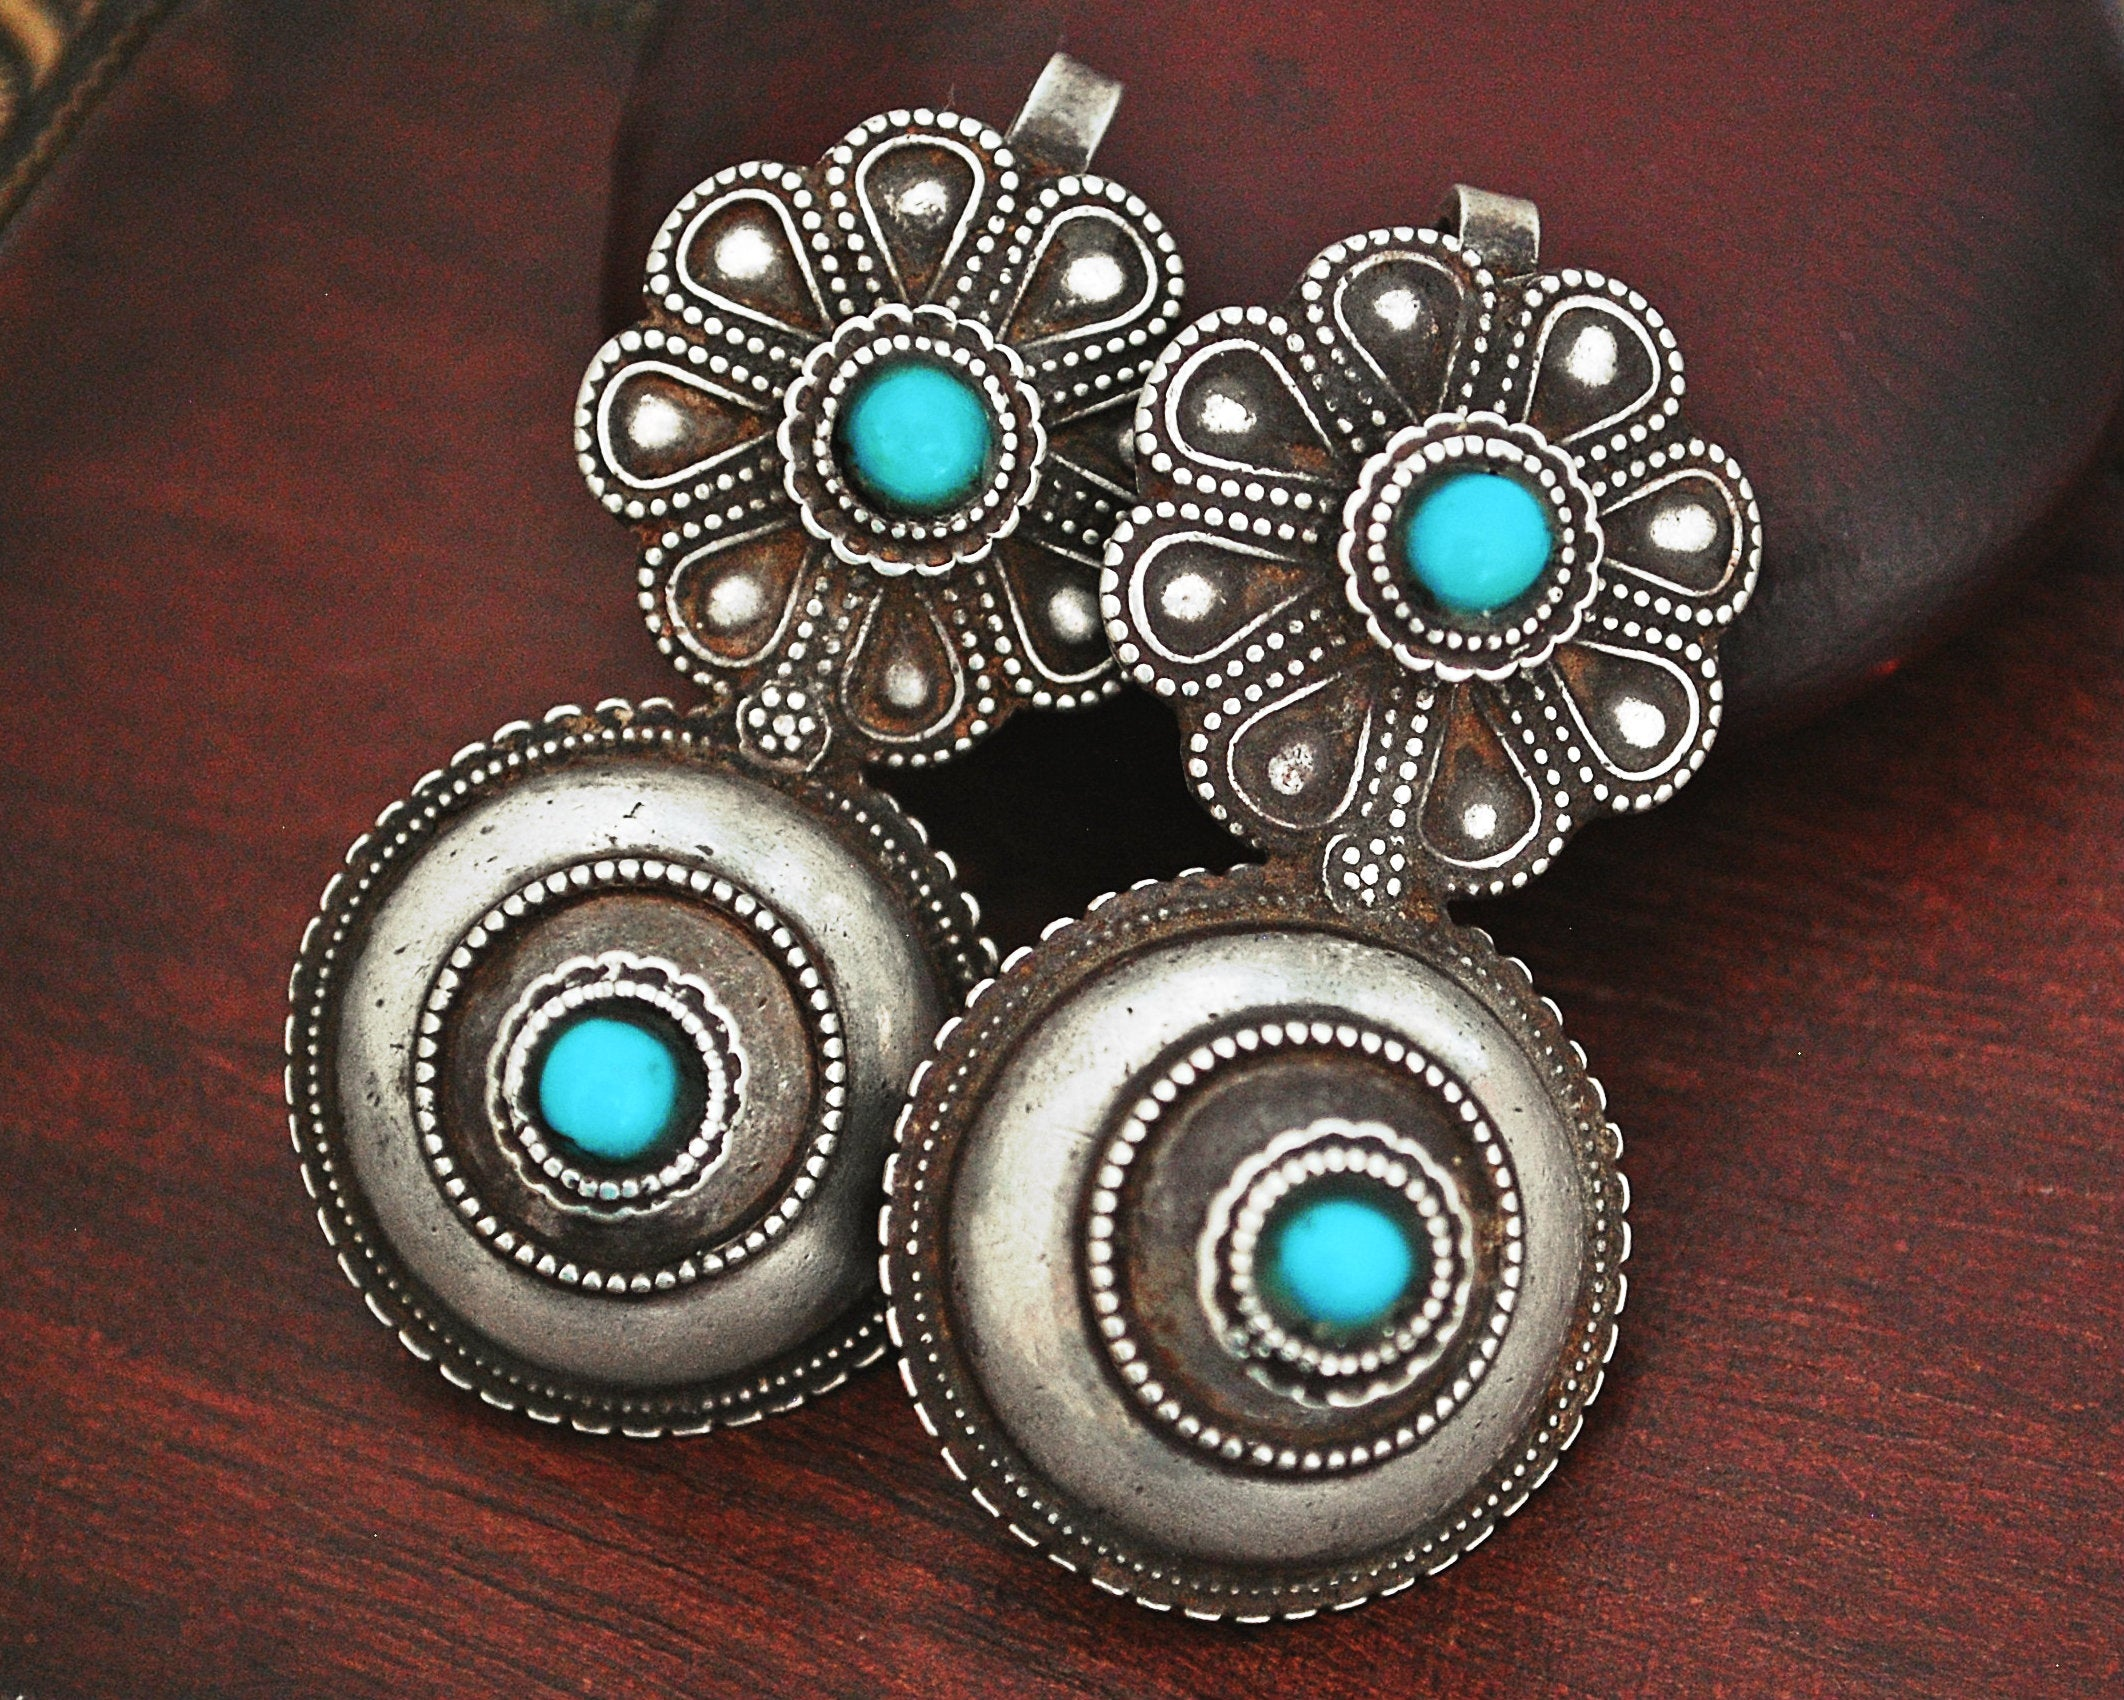 Old Rajasthani Tribal Earrings with Turquoise